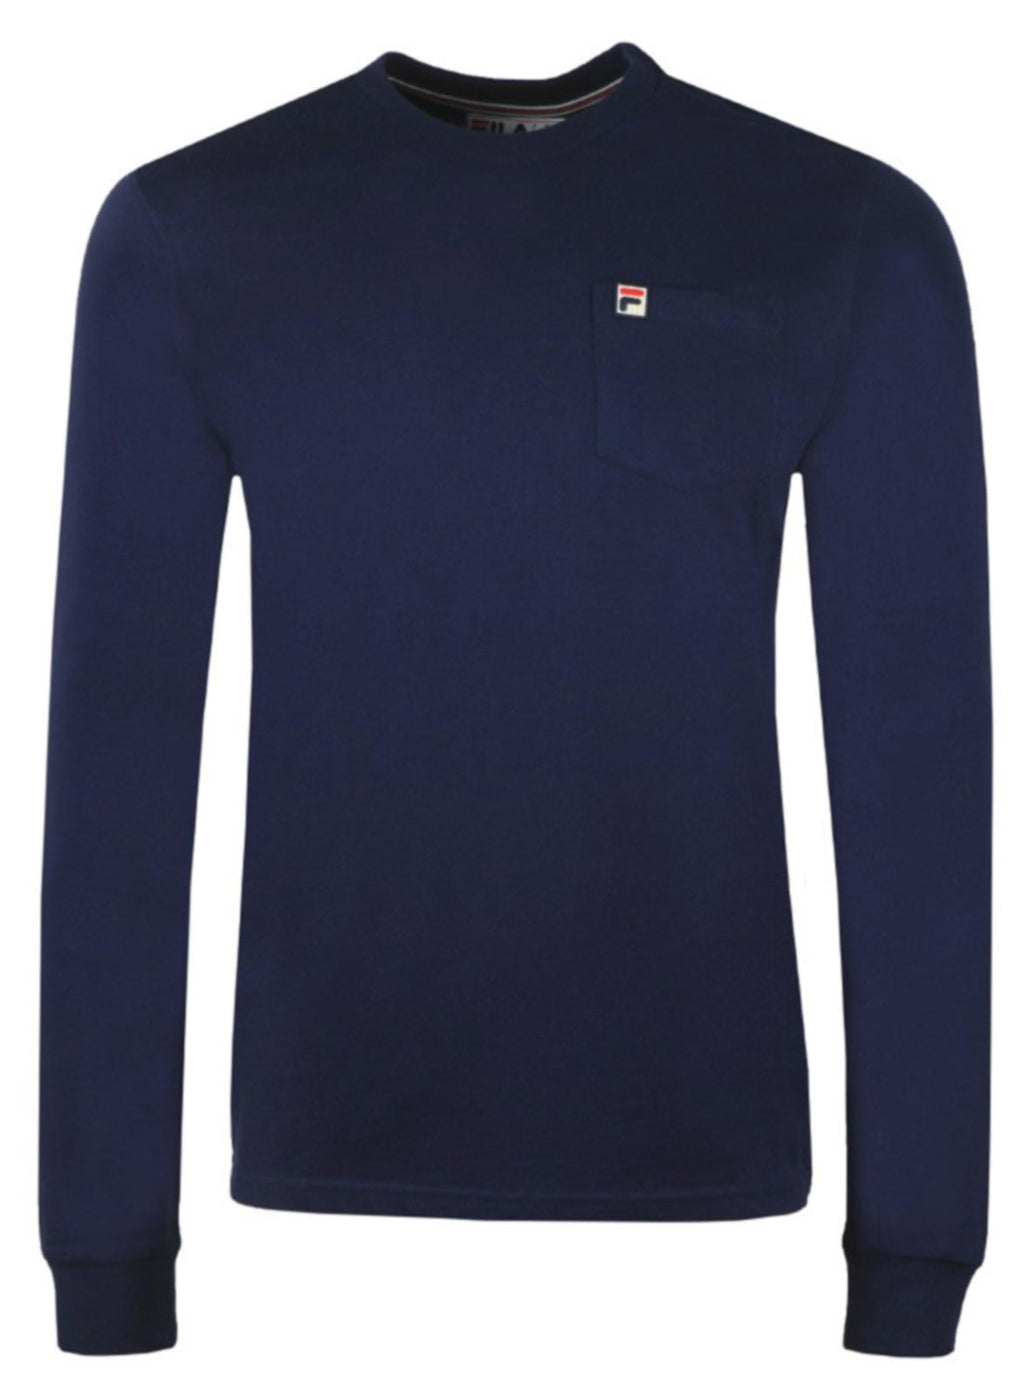 Fila Thames Long Sleeve T-Shirt	Peacoat